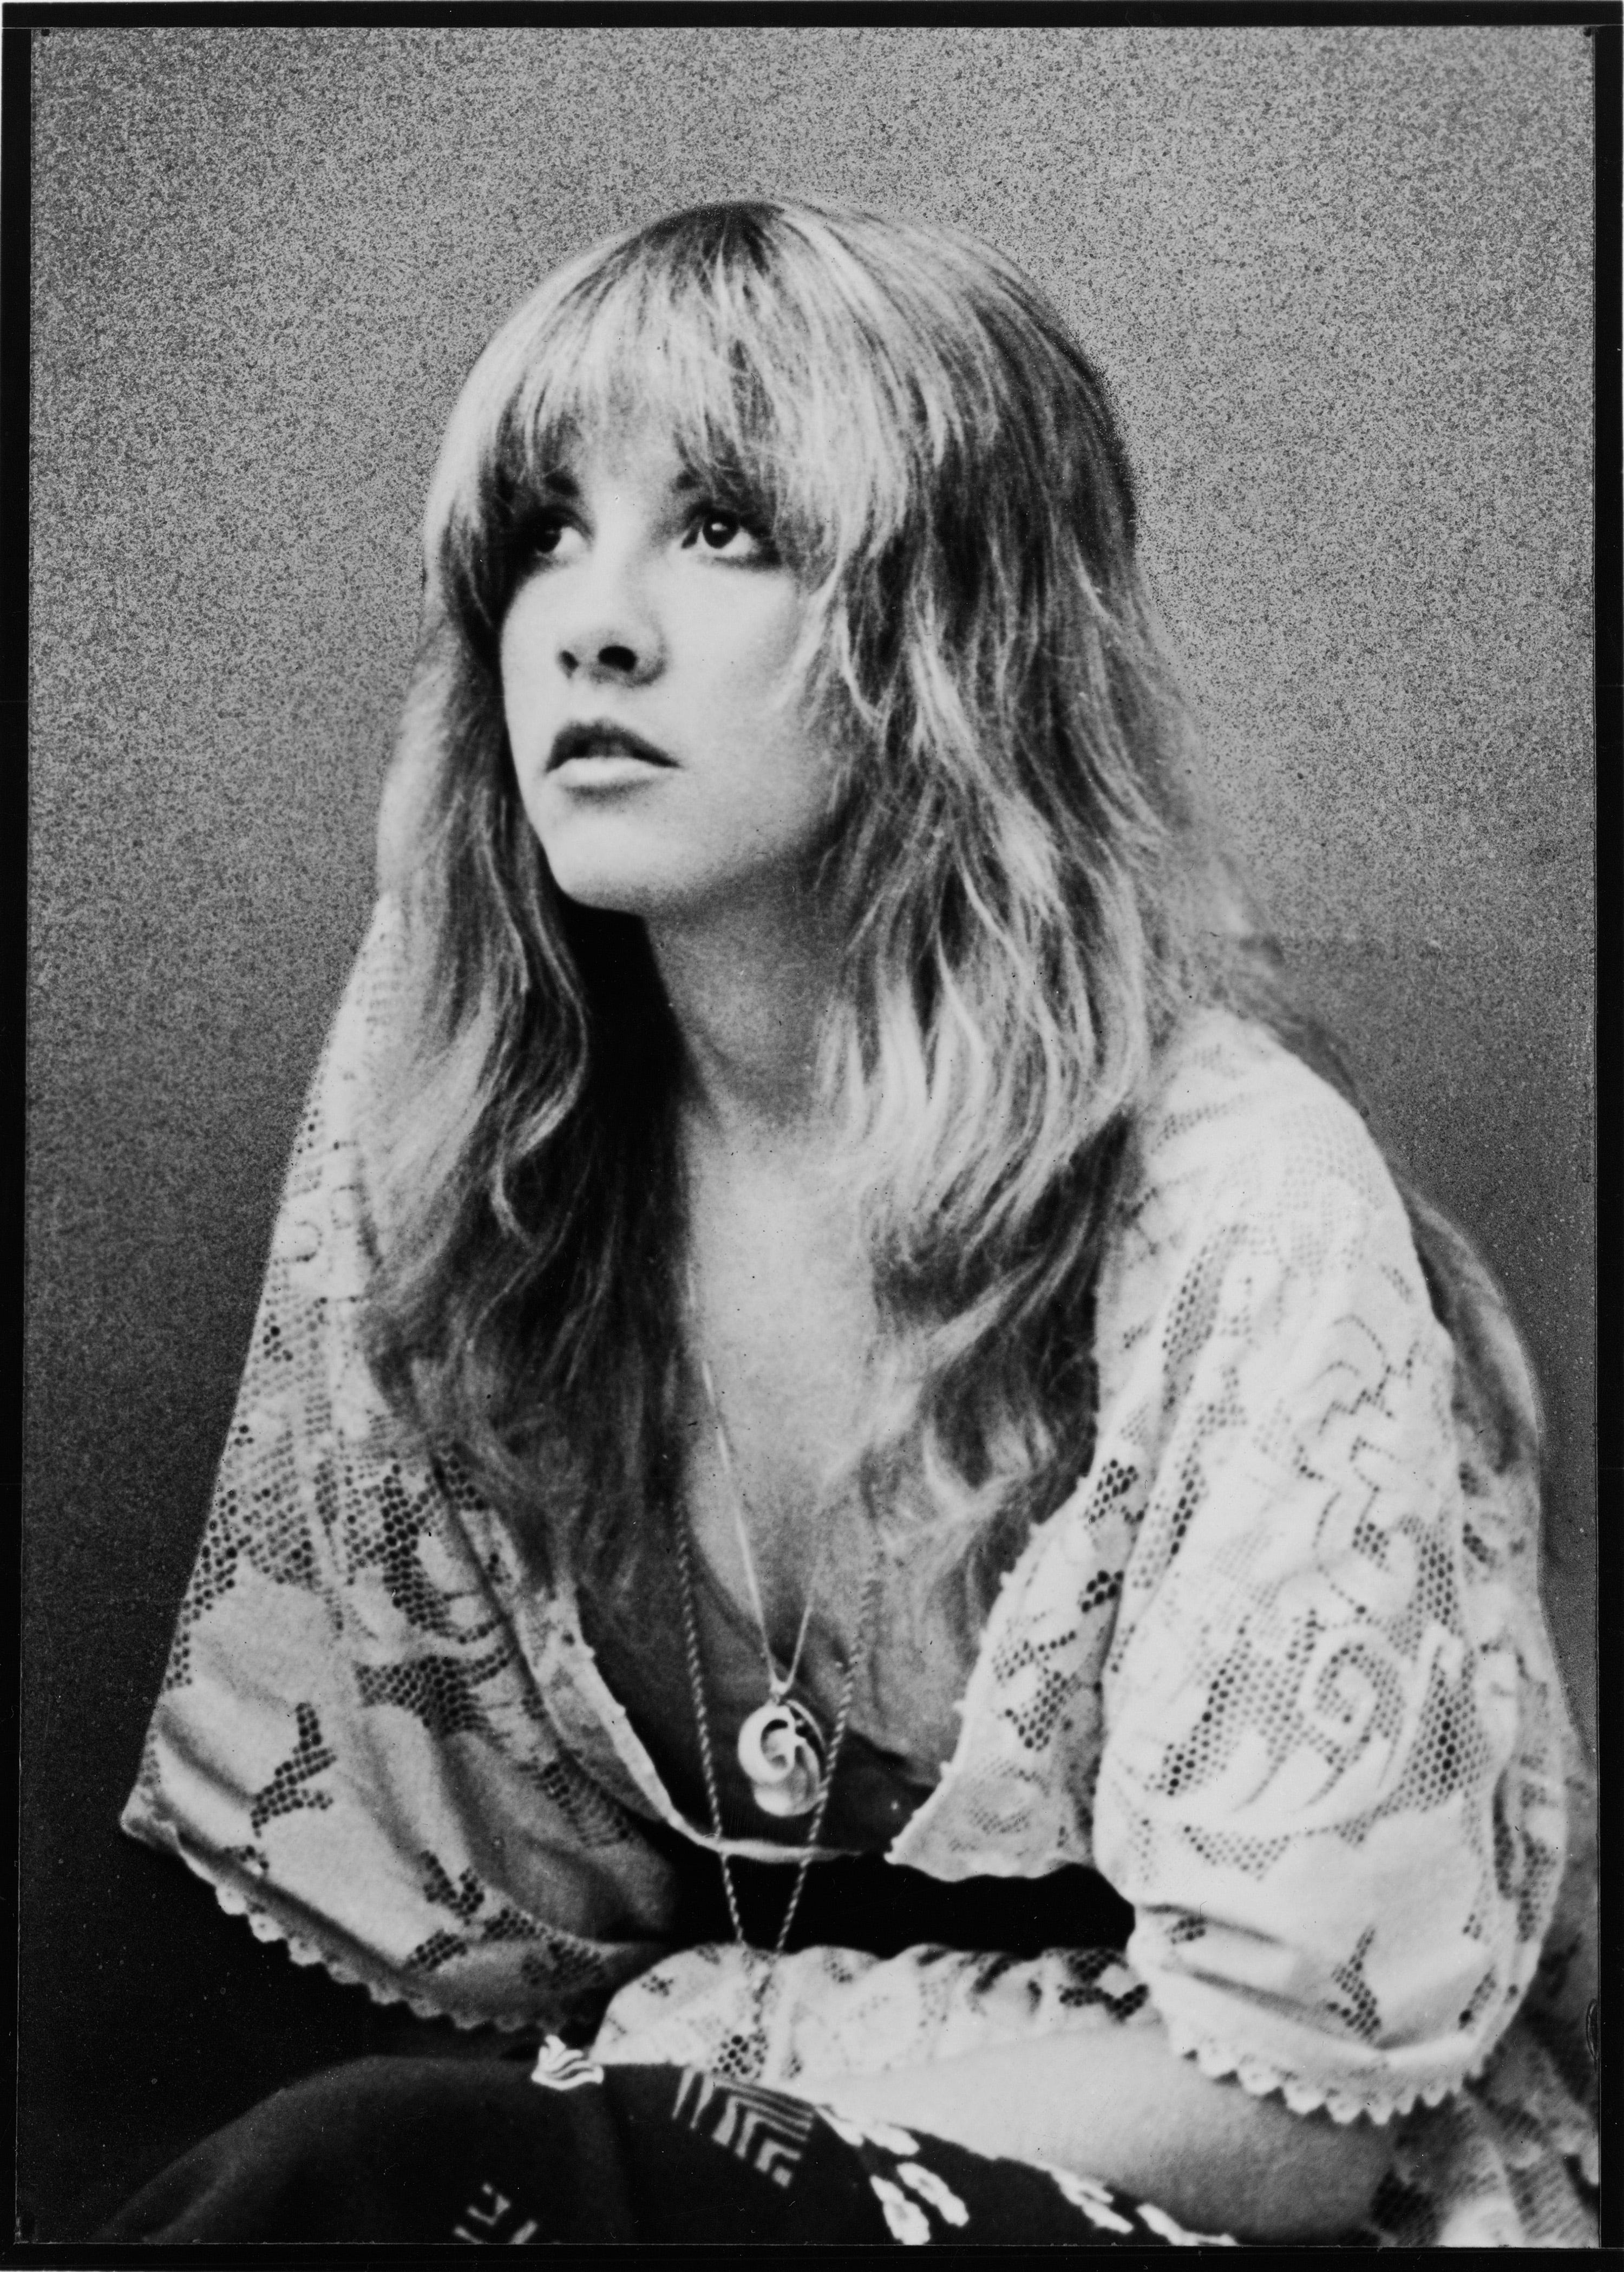 Singer Stevie Nicks in a promotional photo from the 1970s.